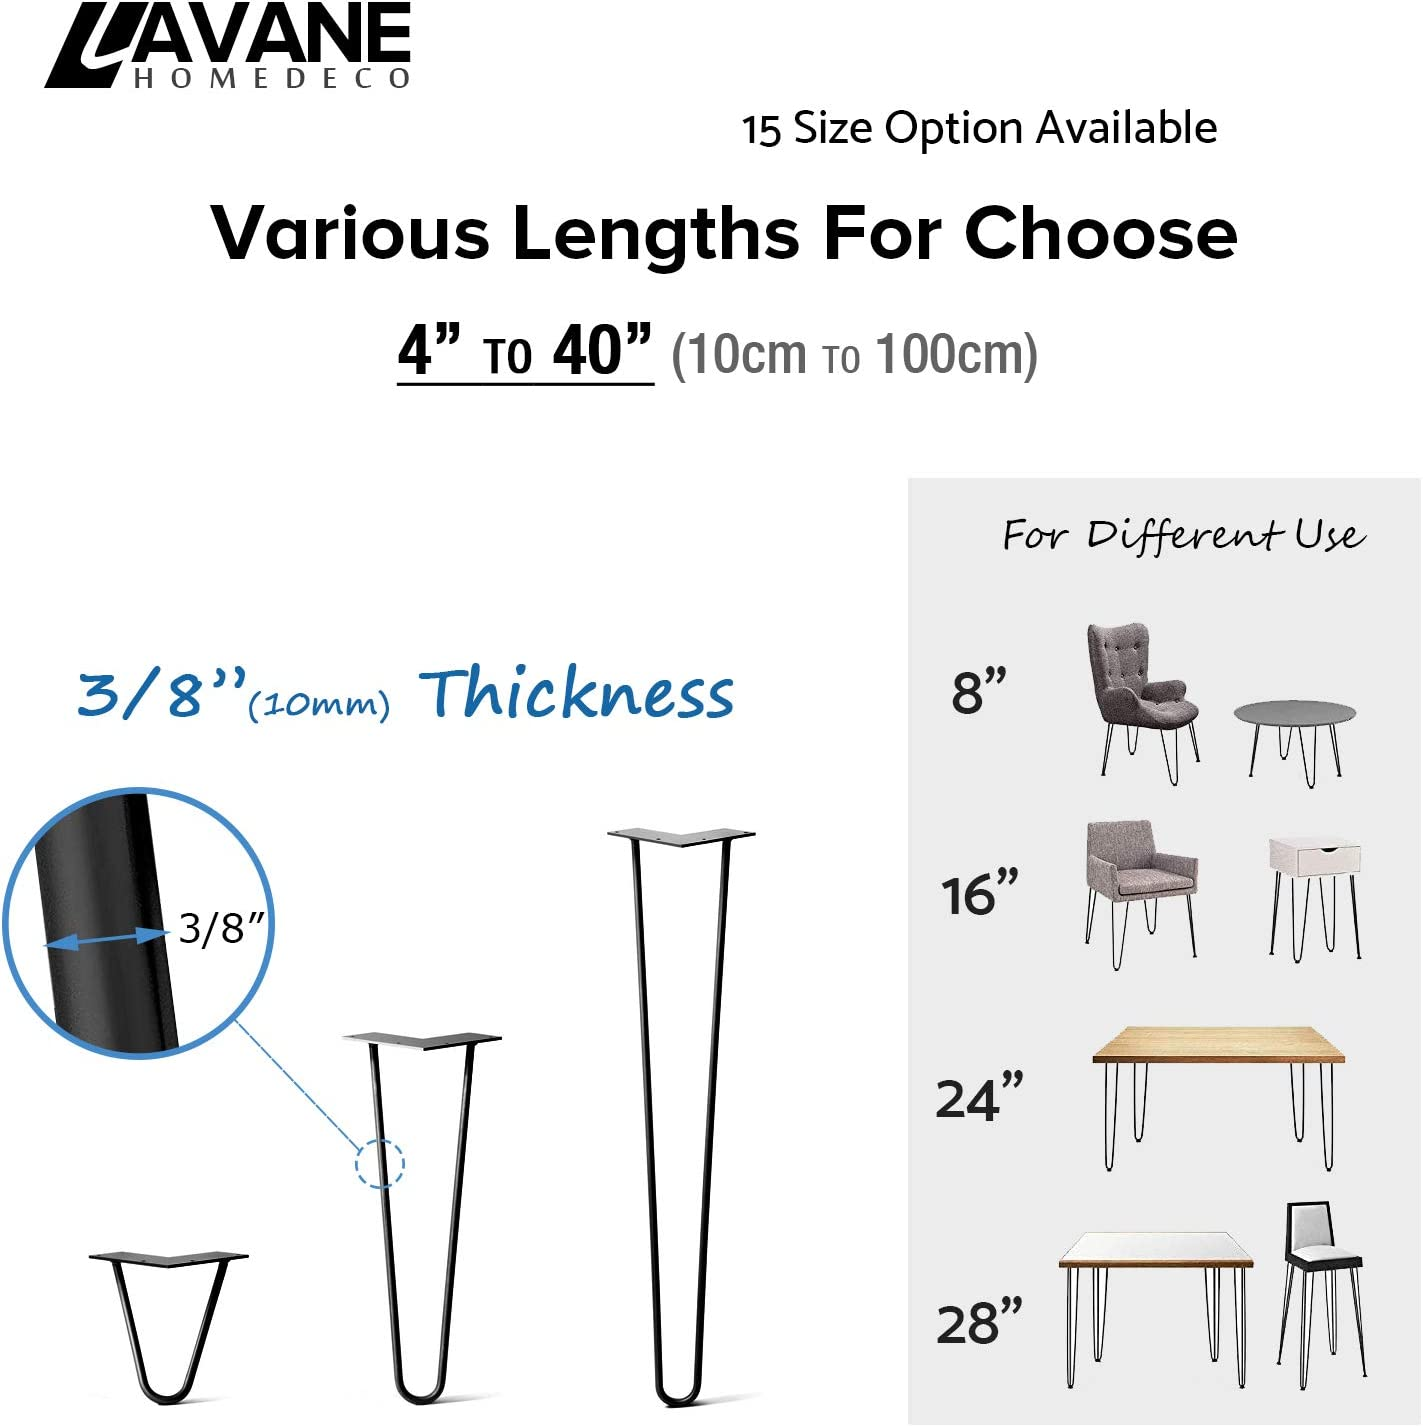 10cm Hairpin Table Legs La Vane 4PCS Mid-Century Modern DIY Metal Furniture Legs with Floor Protectors /& Screws for Coffee and End Table Cabinet TV Stand 4 inch